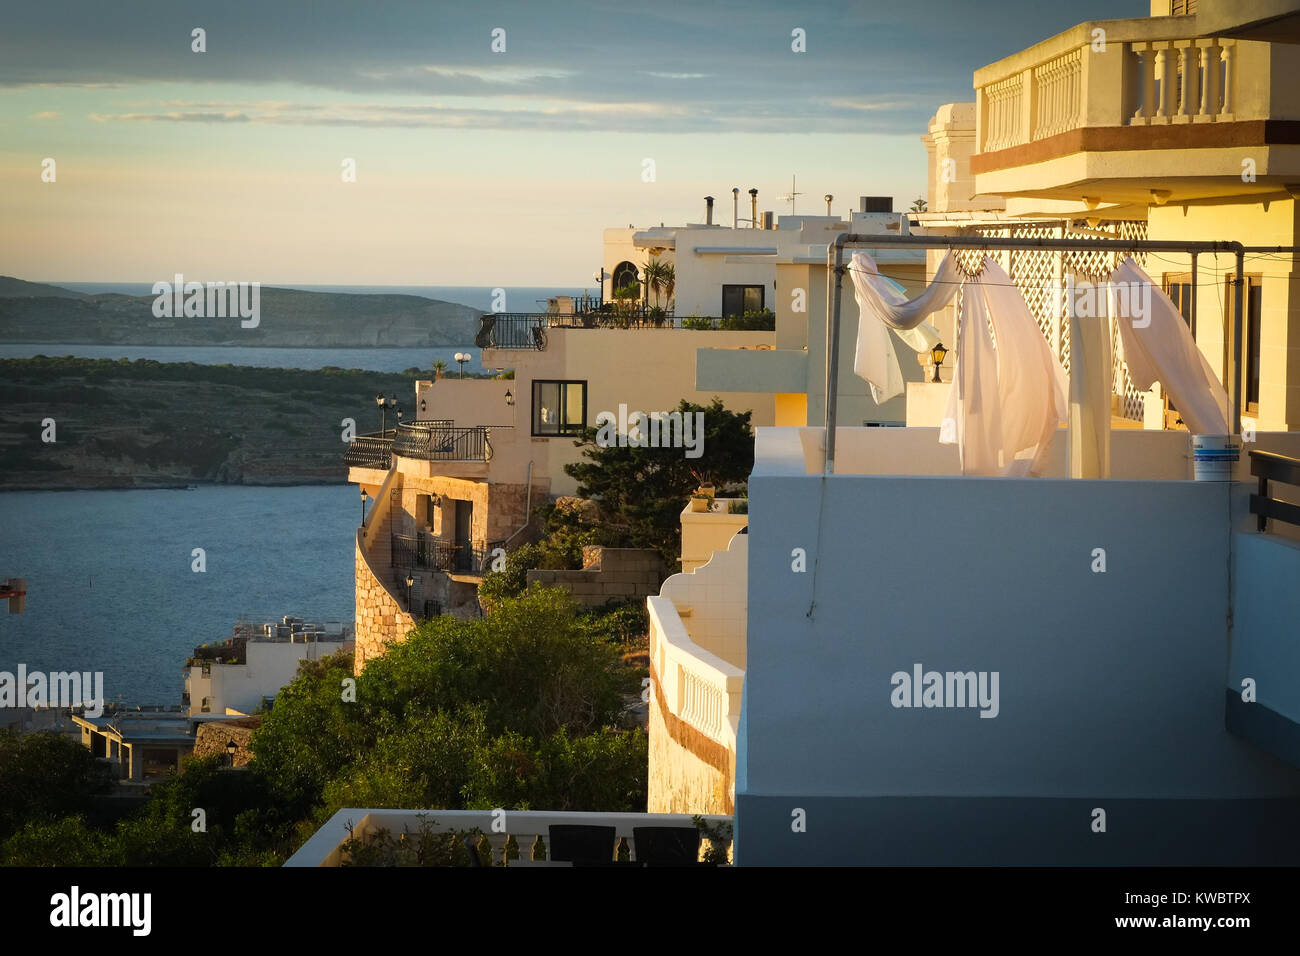 Washing drying on a balcony in Mellieha, Malta, evening light, with the sea behind - Stock Image